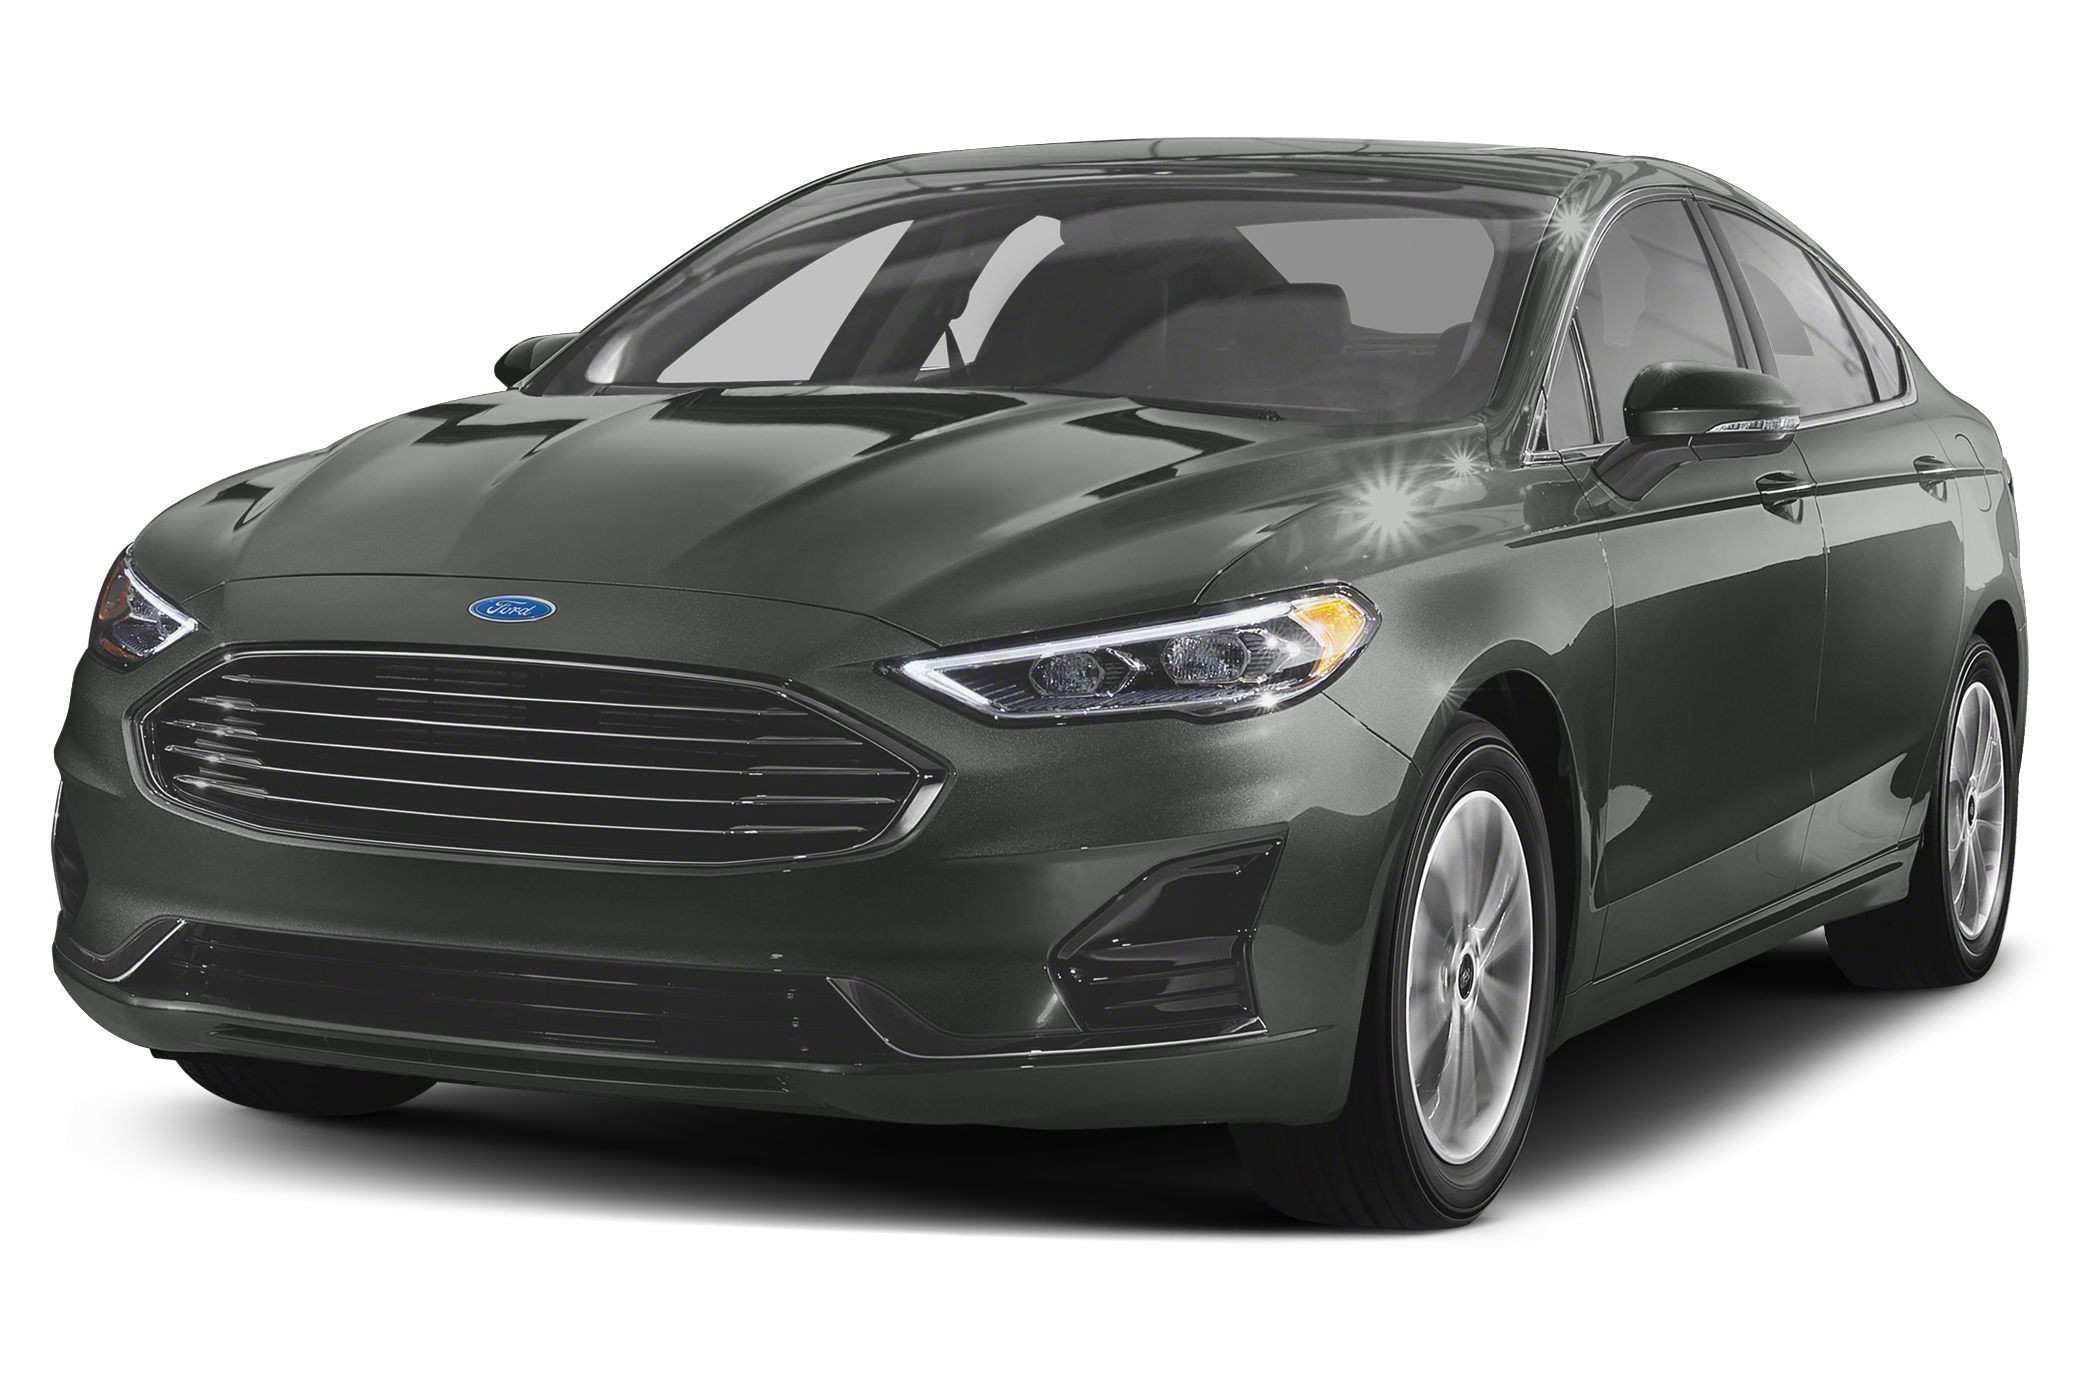 48 All New 2020 Chevrolet Impala First Drive with 2020 Chevrolet Impala